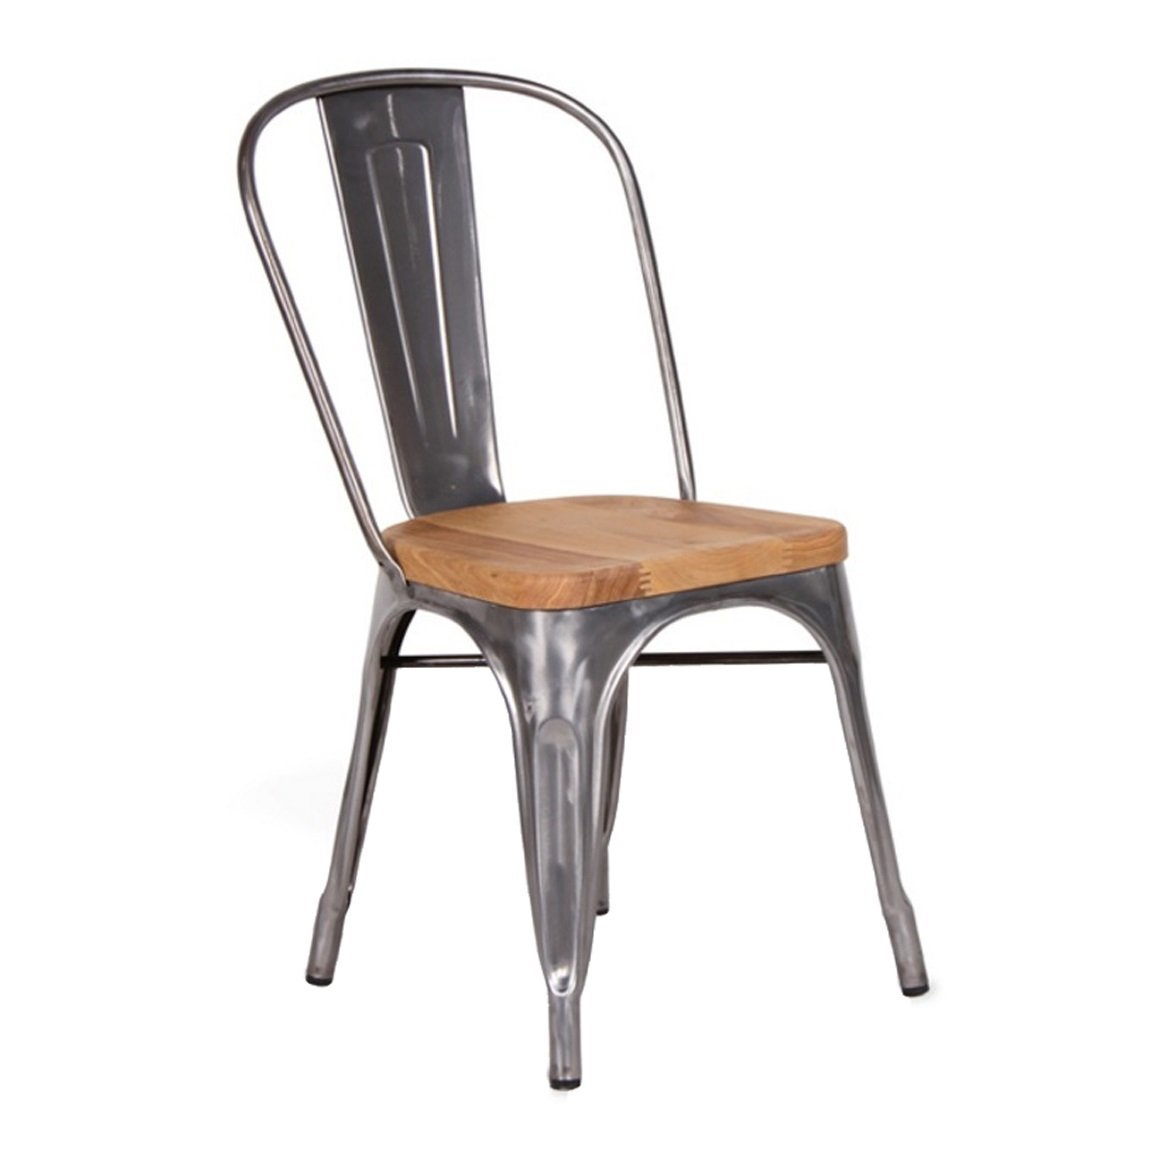 Chair Wooden Replica Xavier Pauchard Wooden Seat Tolix Chair